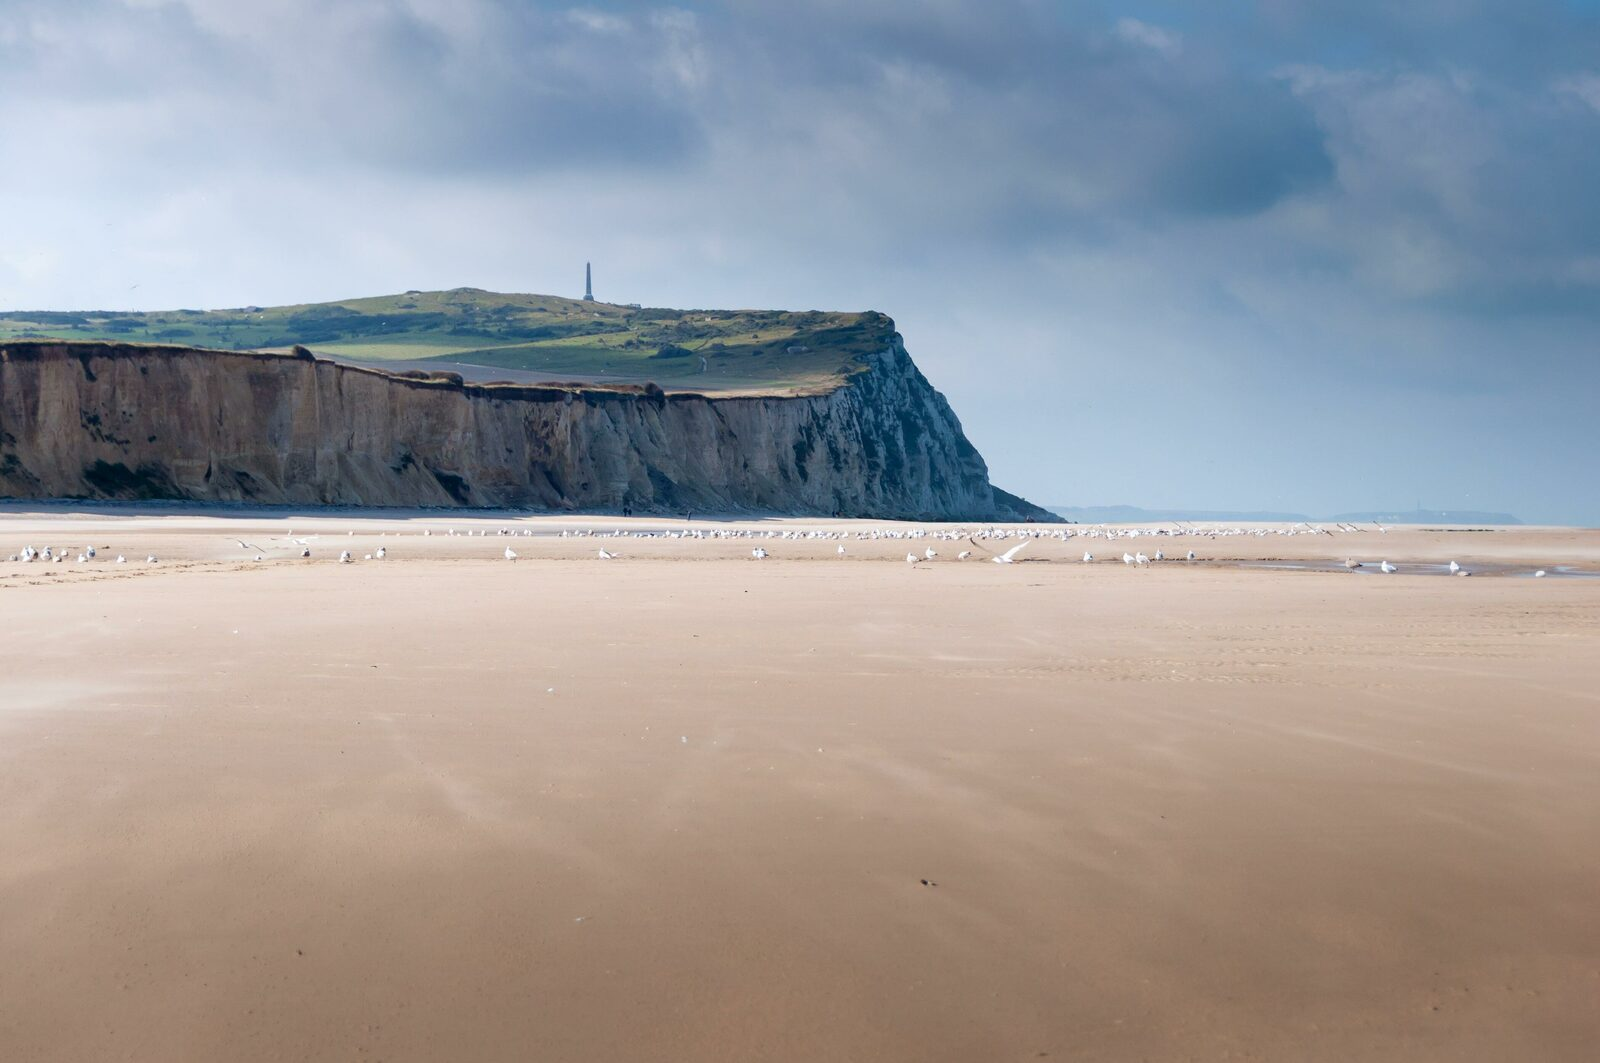 View of the top of Cap Blanc Nez from the beach.